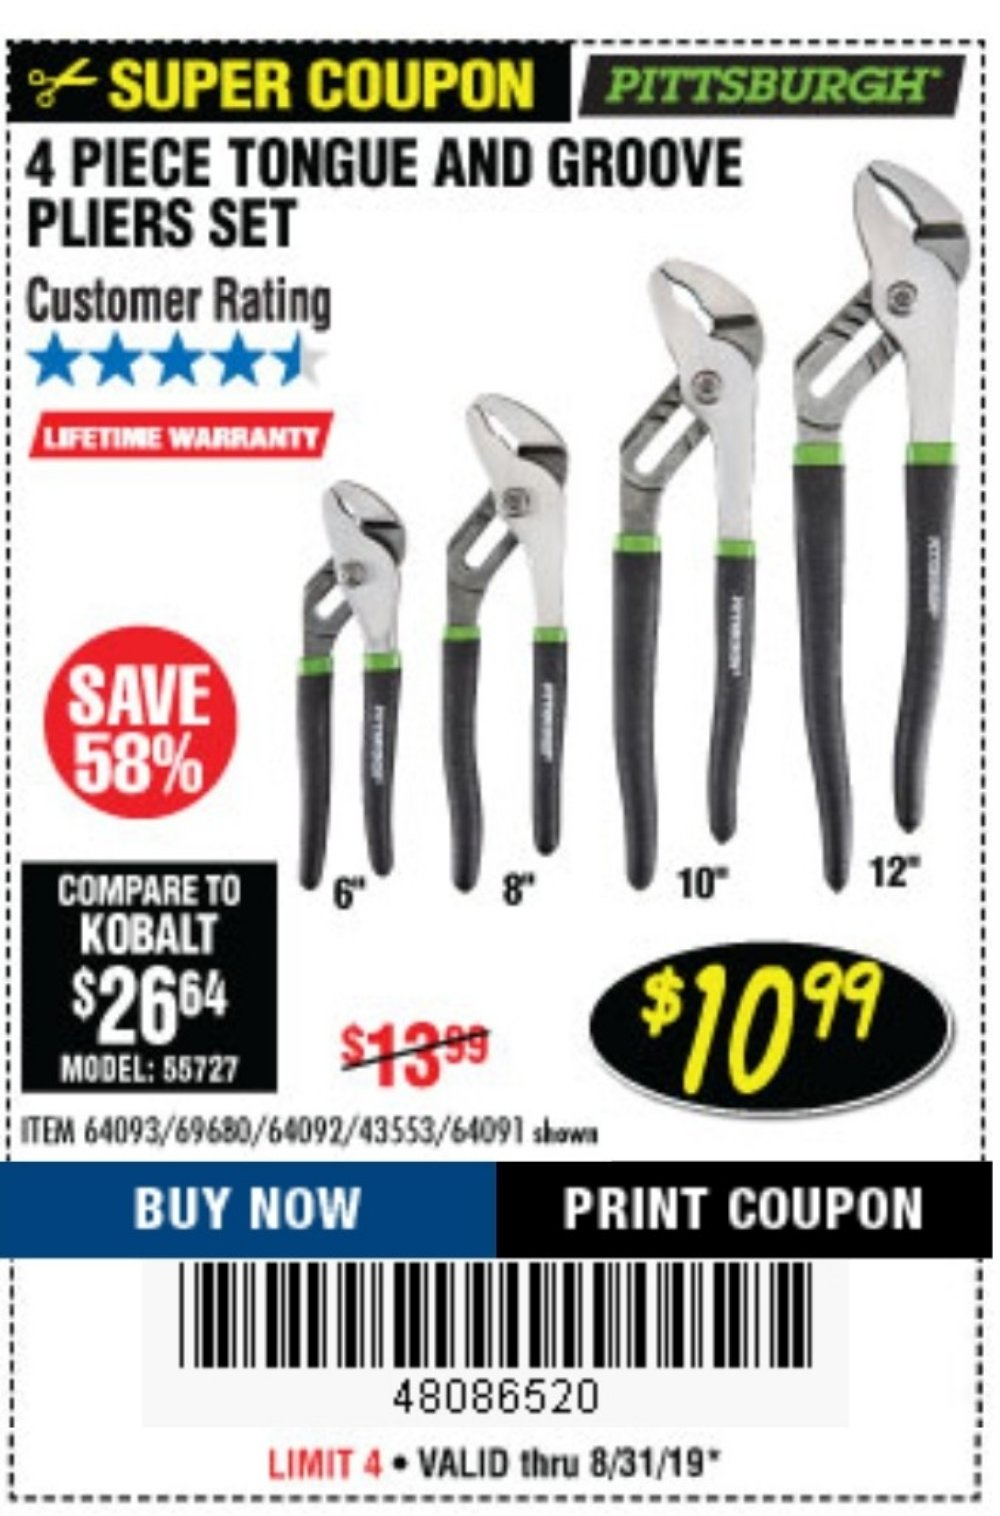 Harbor Freight Coupon, HF Coupons - 4 Piece Tongue And Groove Joint Pliers Set